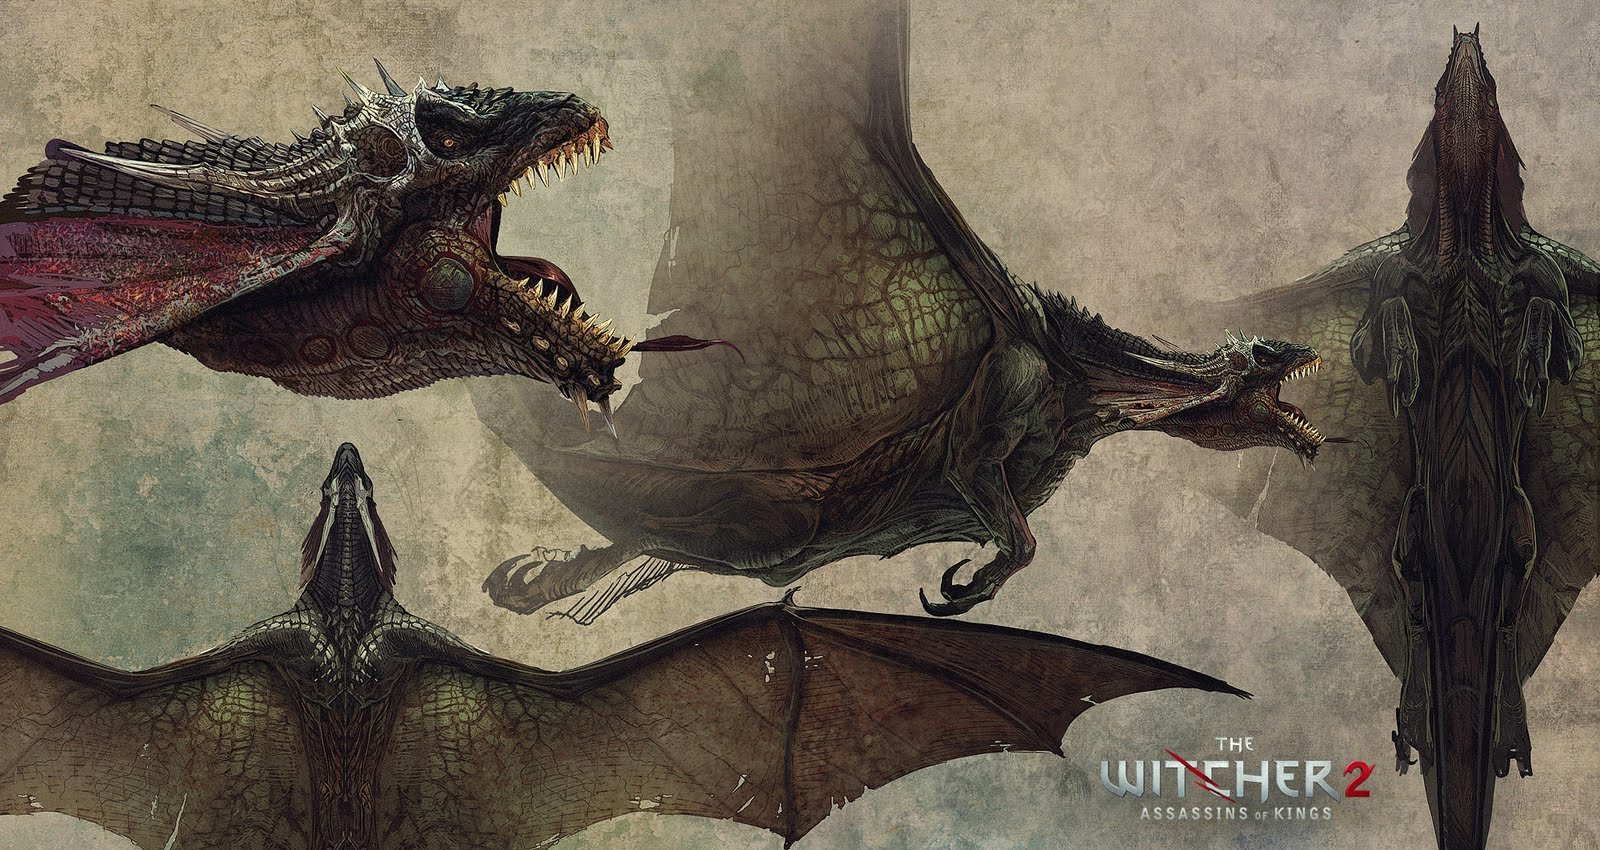 The Witcher 2 dragon concept